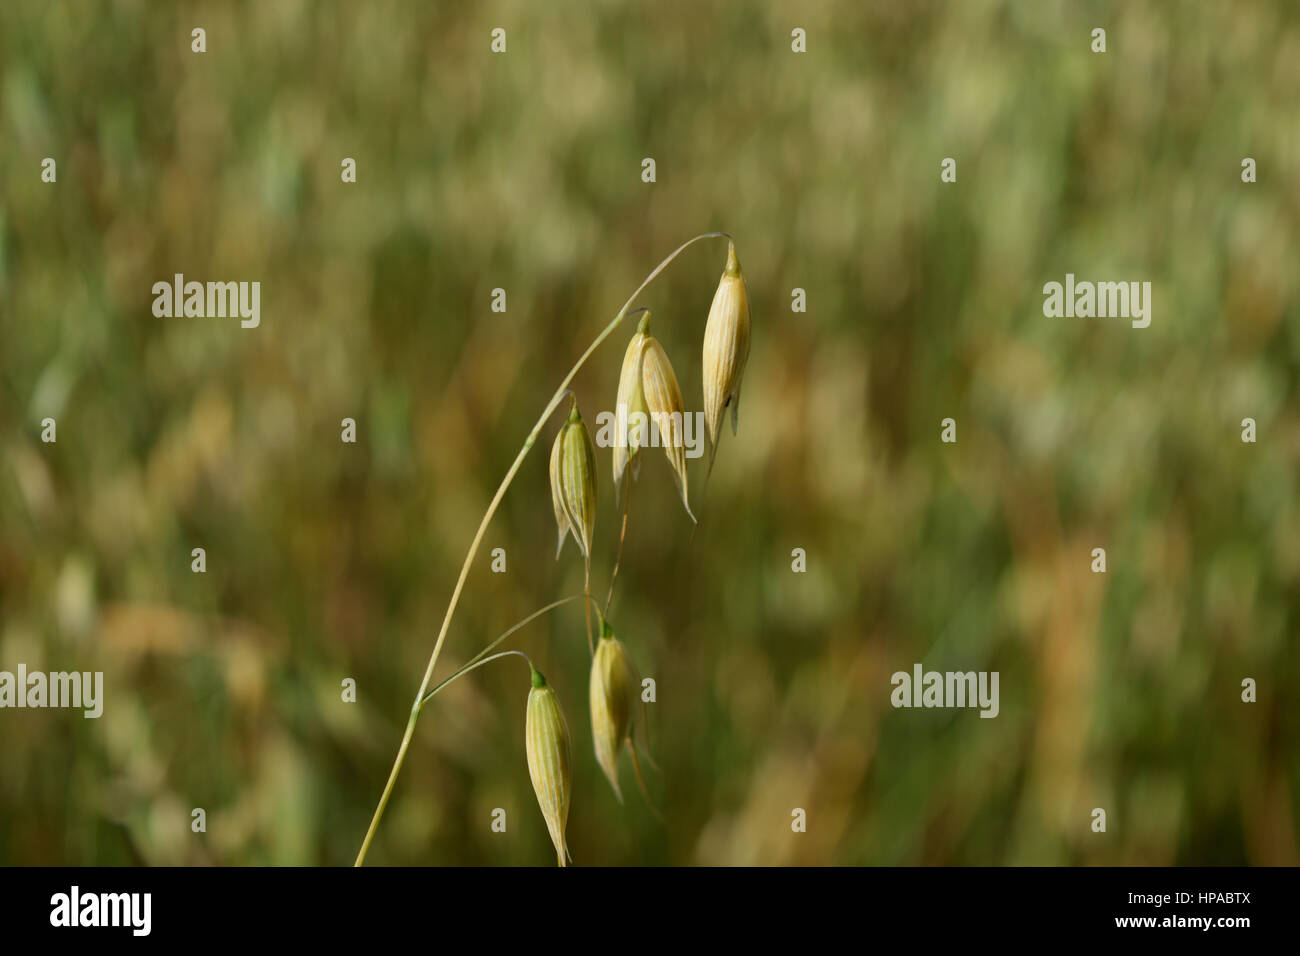 Oat Detail with Blurred Background - Stock Image